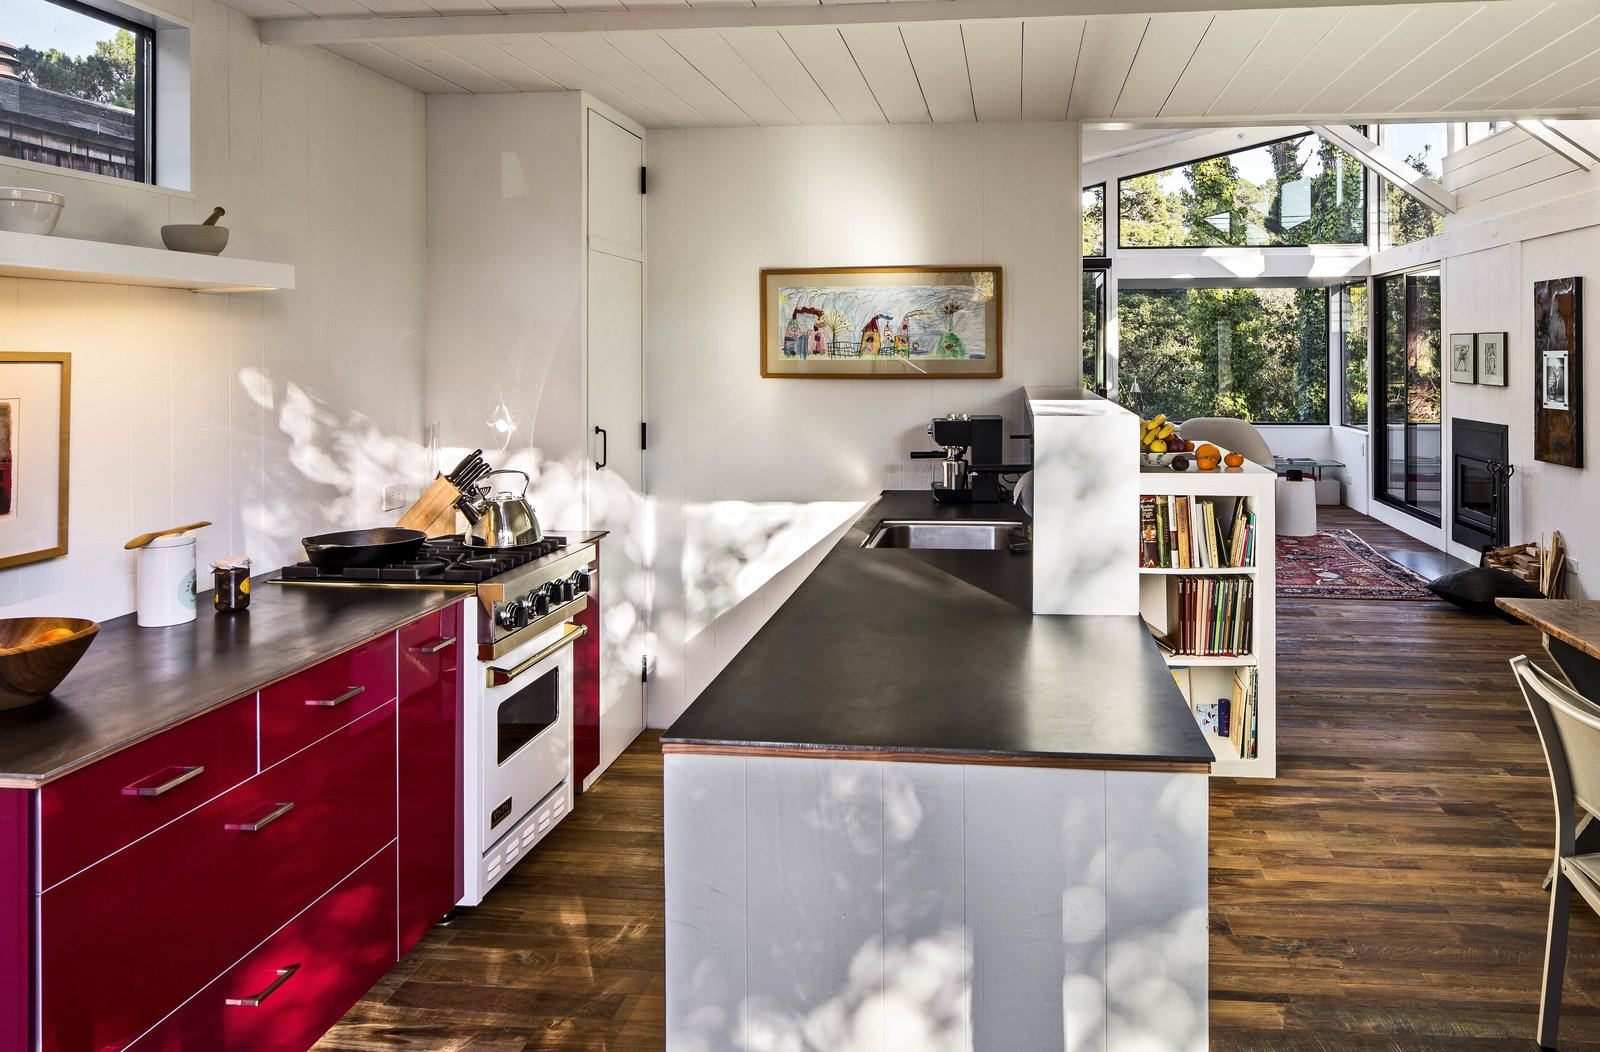 This house in Carmel by the Sea is enlivened by its very red kitchen cabinetry. By knocking down a dividing wall, the architects opened the kitchen up to the rest of the living space. Ikea red lacquer cabinetry and Caesarstone countertops replace dingy cupboards and old-fashioned finishes. Stainless steel appliances help ground the airy, open space.